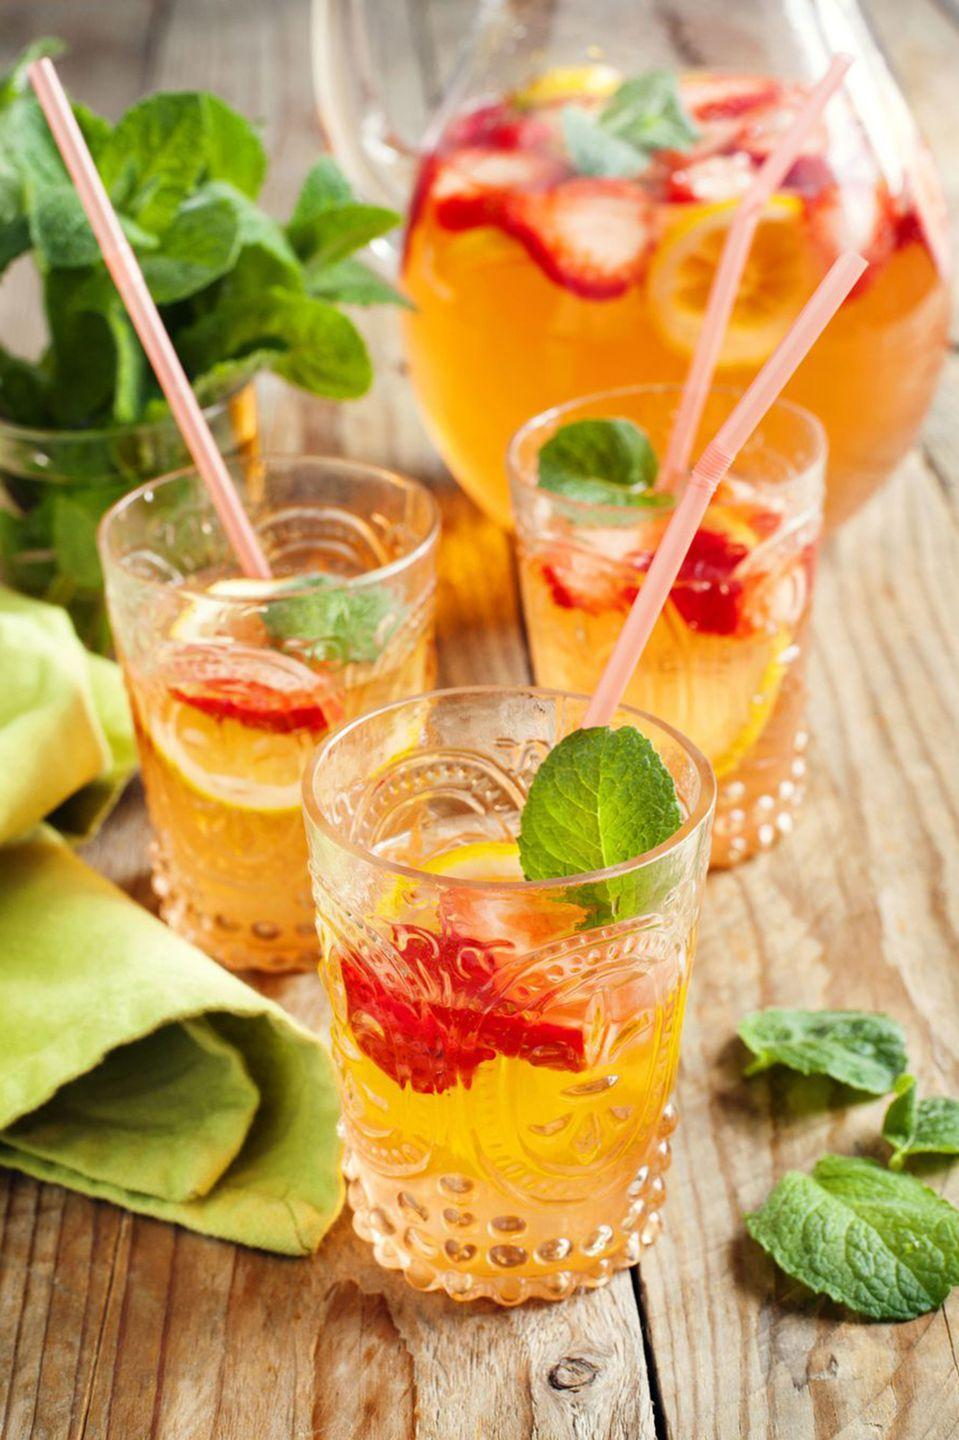 "<p><strong>Ingredients:</strong><br></p><p>3 cups Martini & Rossi Prosecco</p><p>1/4 cup Fresh Squeezed Lemon Juice or Lemonade</p><p>6 large Mint Leaves</p><p>1/2 cups Sparkling Water</p><p>3 Lemon Slices</p><p>5 Fresh Strawberries (sliced)</p><p>3 Cucumber Slices</p><p><strong>Directions: </strong></p><p>Combine lemon juice, mint leaves, sparkling water, lemons, strawberries, and cucumbers in a pitcher. Gently stir in chilled Martini & Rossi Prosecco just before serving. Garnish each glass with a sprig of mint.</p><p><em>Courtesy of <a href=""http://www.totalwine.com/wine/champagne-sparkling-wine/prosecco/martini-rossi-prosecco/p/99448750"" rel=""nofollow noopener"" target=""_blank"" data-ylk=""slk:Martini & Rossi Prosecco"" class=""link rapid-noclick-resp"">Martini & Rossi Prosecco</a></em></p>"